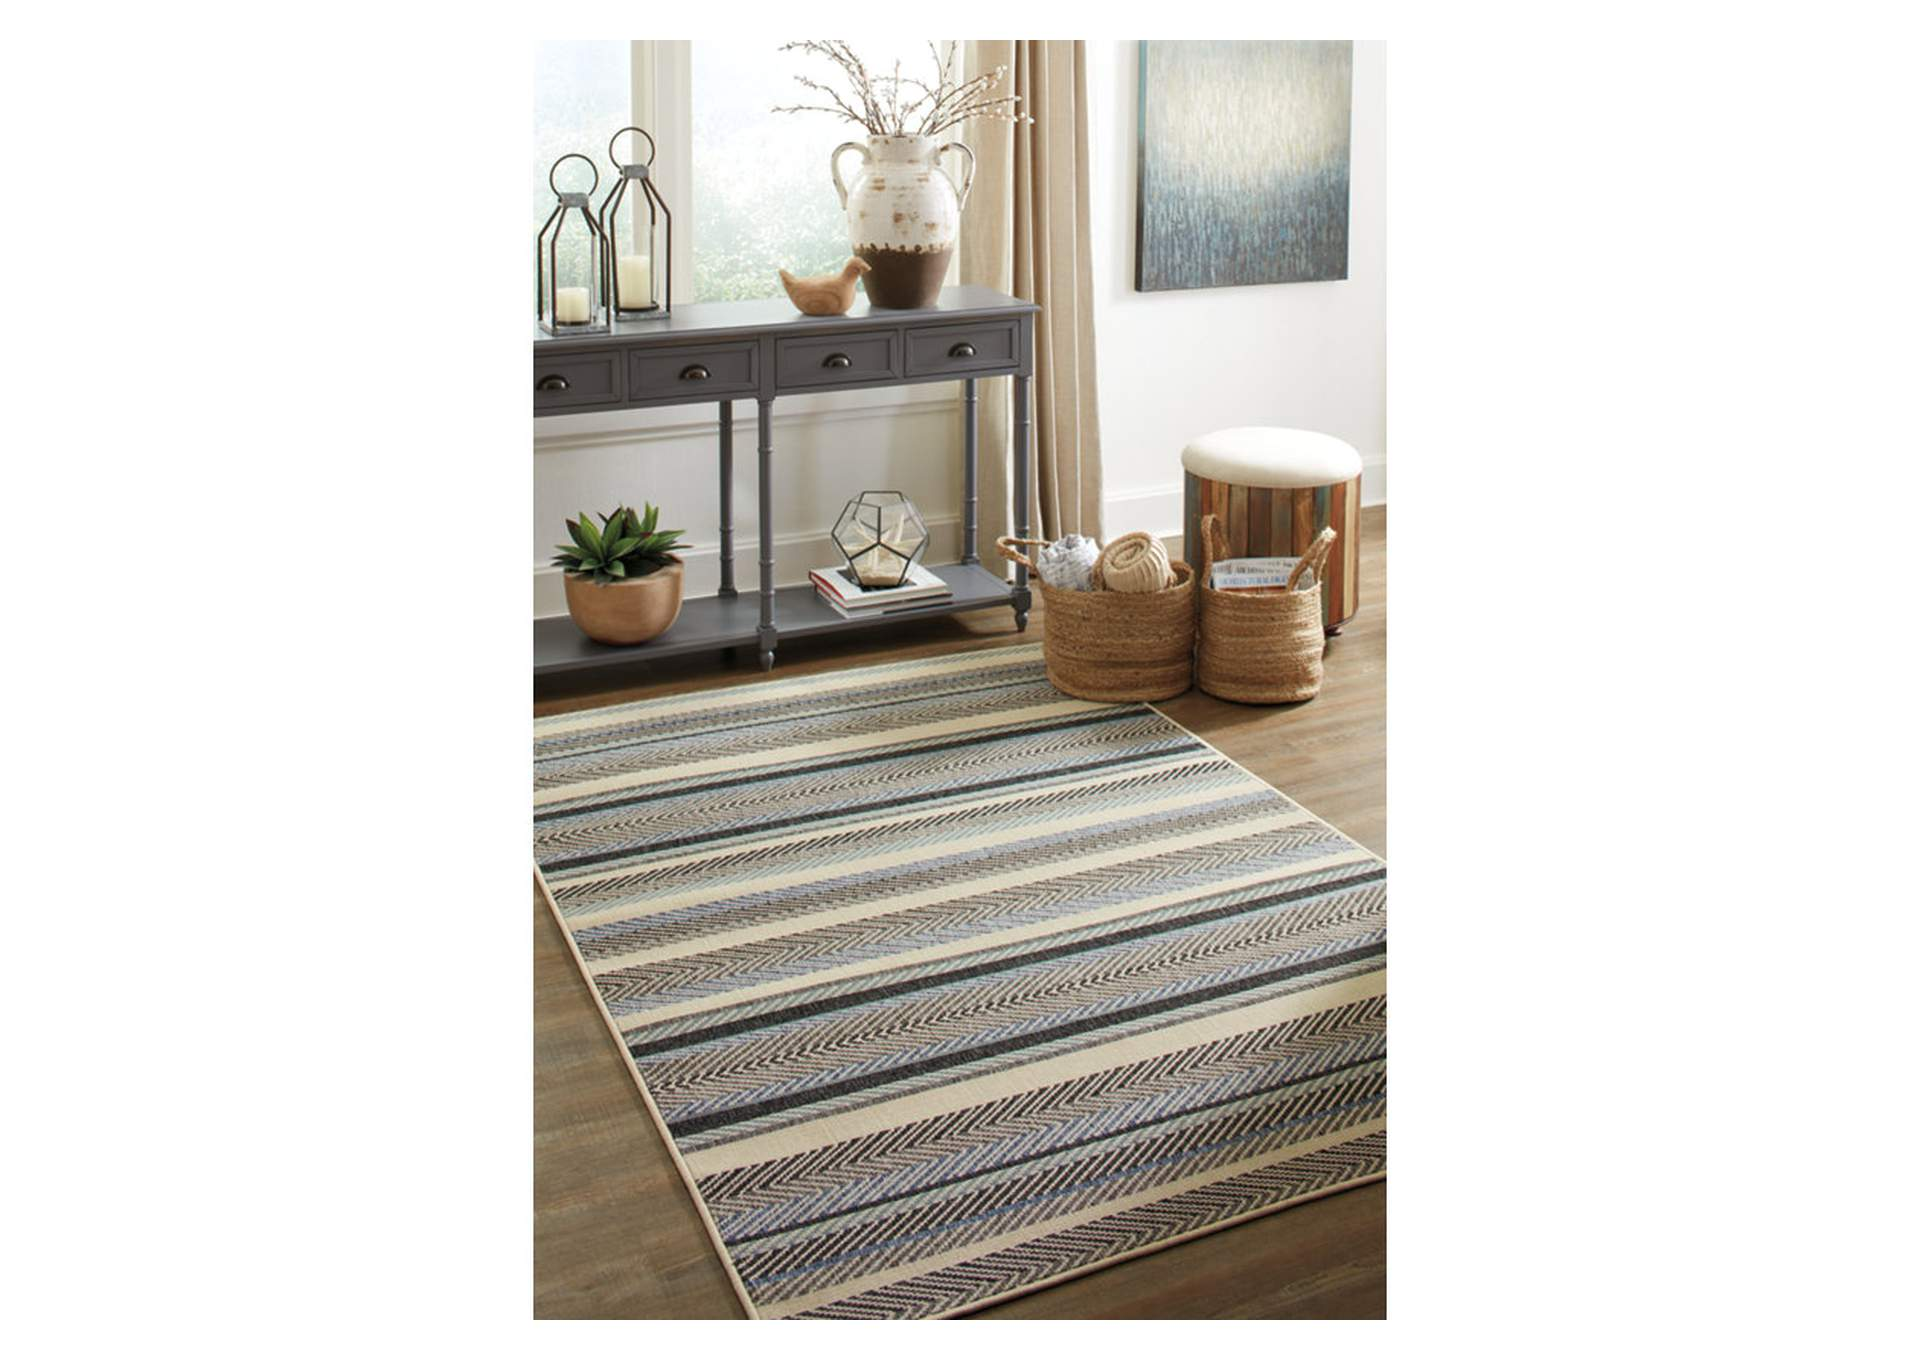 Troost Blue & Cream Medium Rug,Signature Design By Ashley